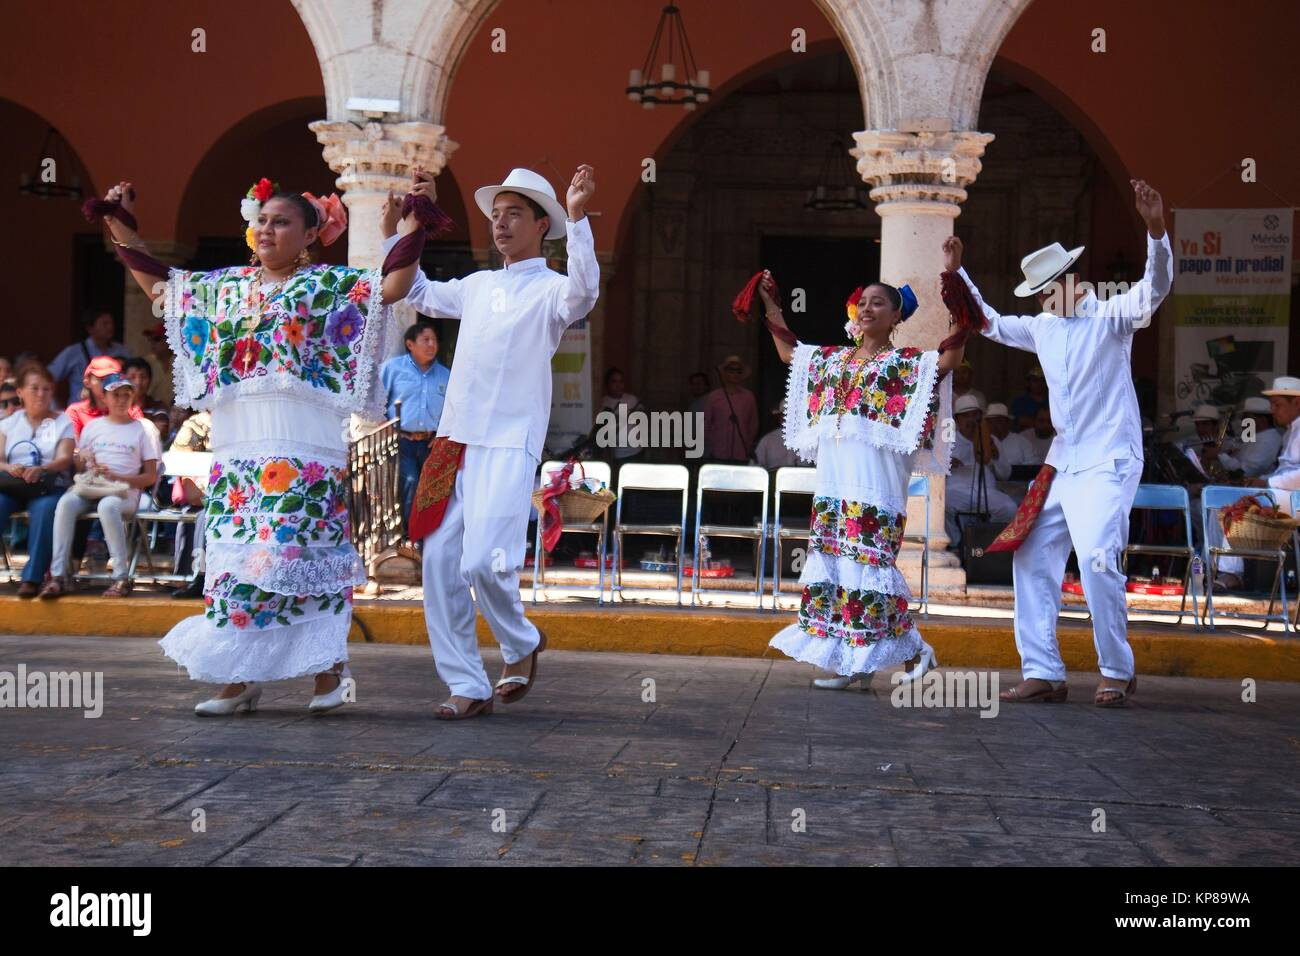 Infantile dancers during a Jarana performance on Merida sunday activities, Merida, Riviera Maya, Yucatan Province, - Stock Image